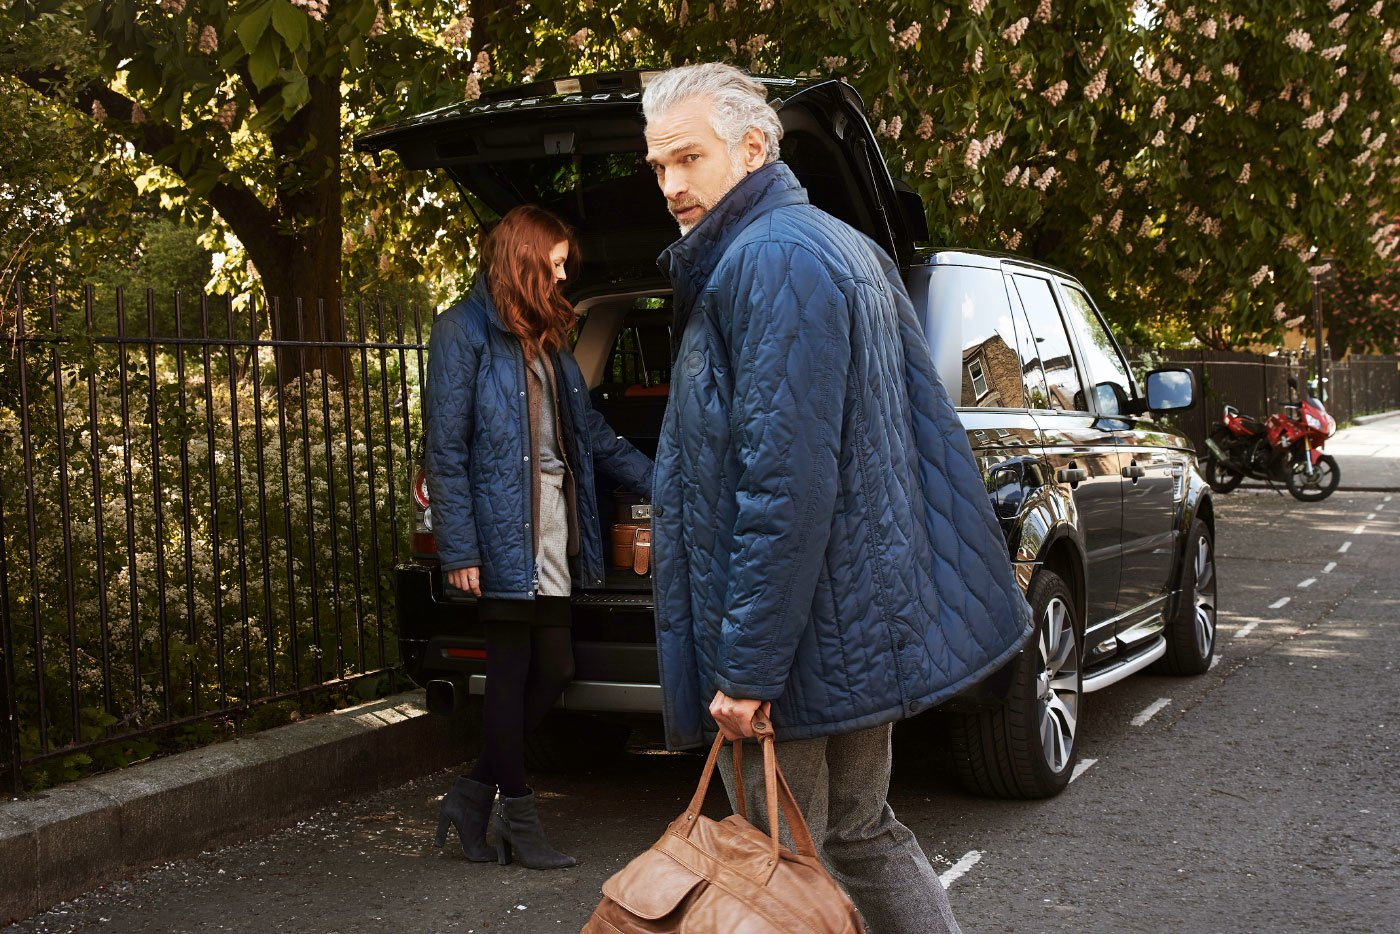 The Qiviut Jacket man and woman range rover